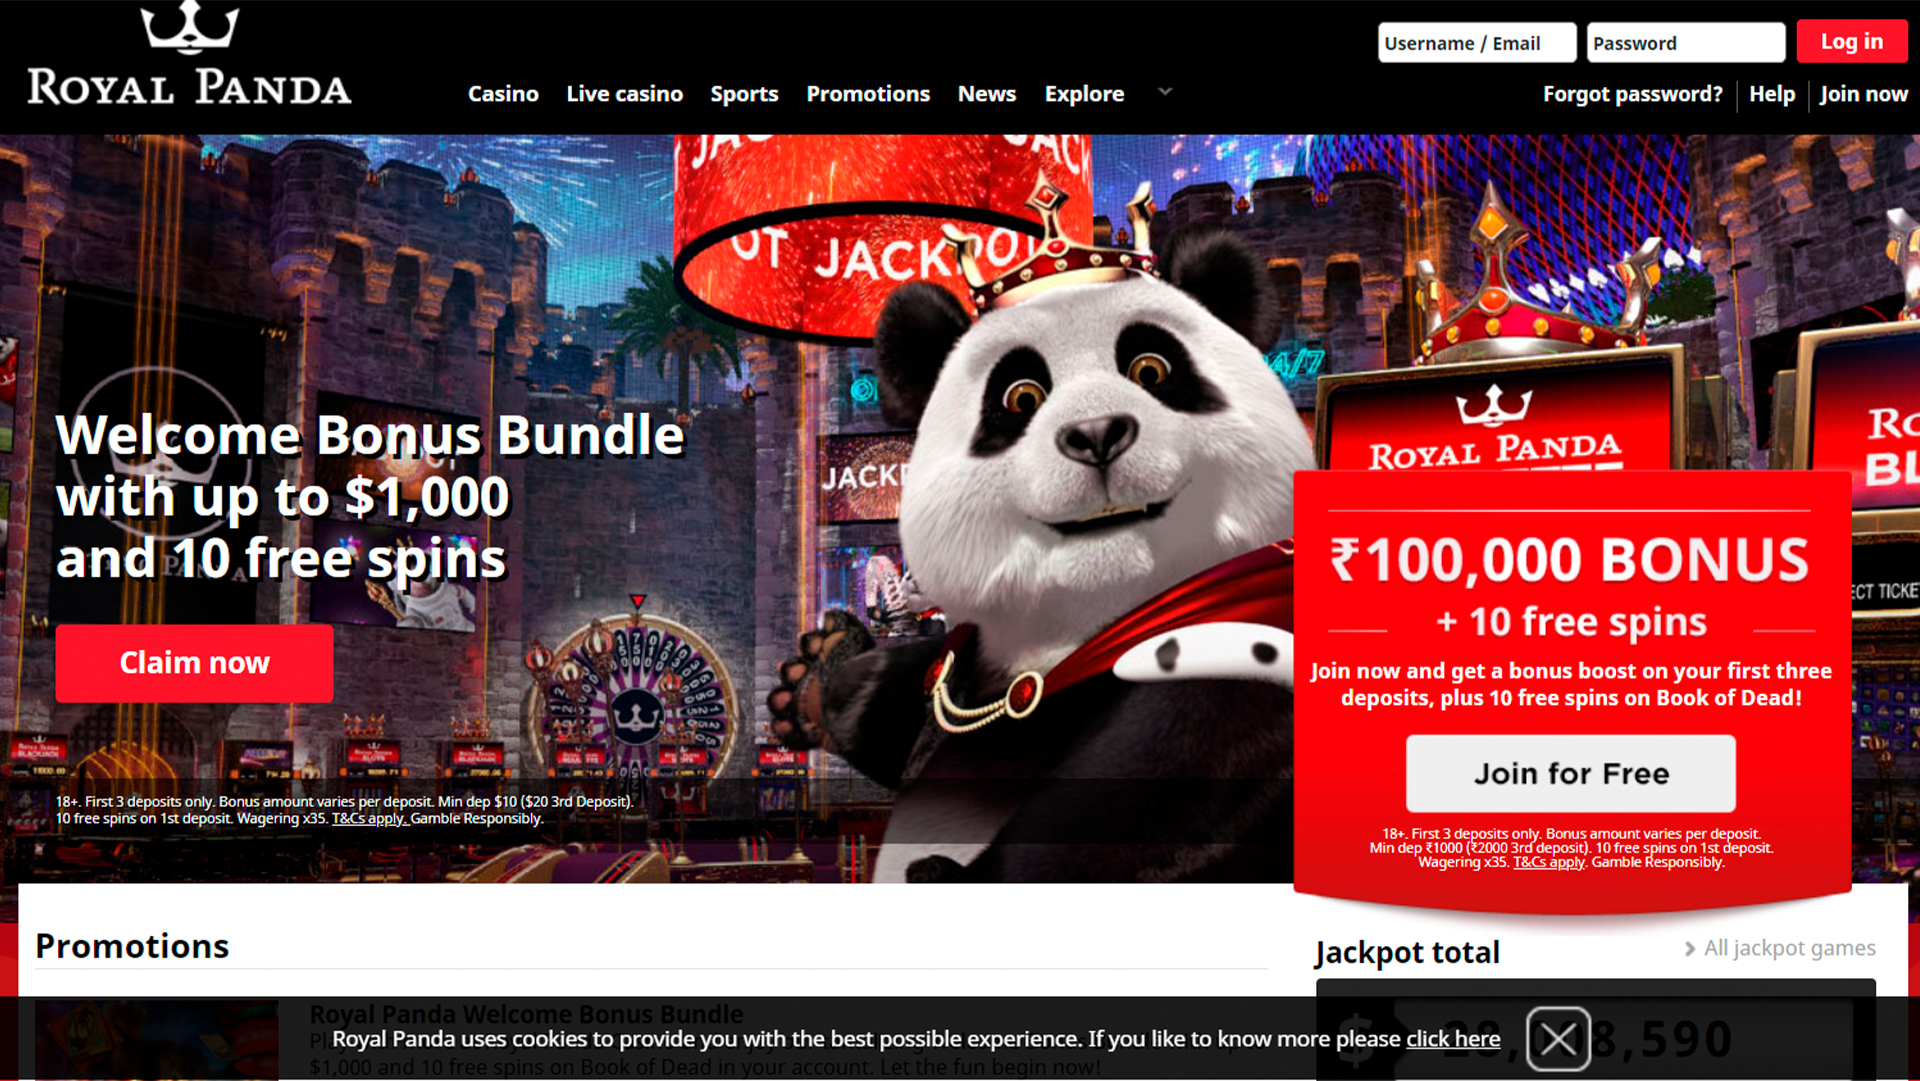 You will see a colorful home page of Royal Panda betting platform.